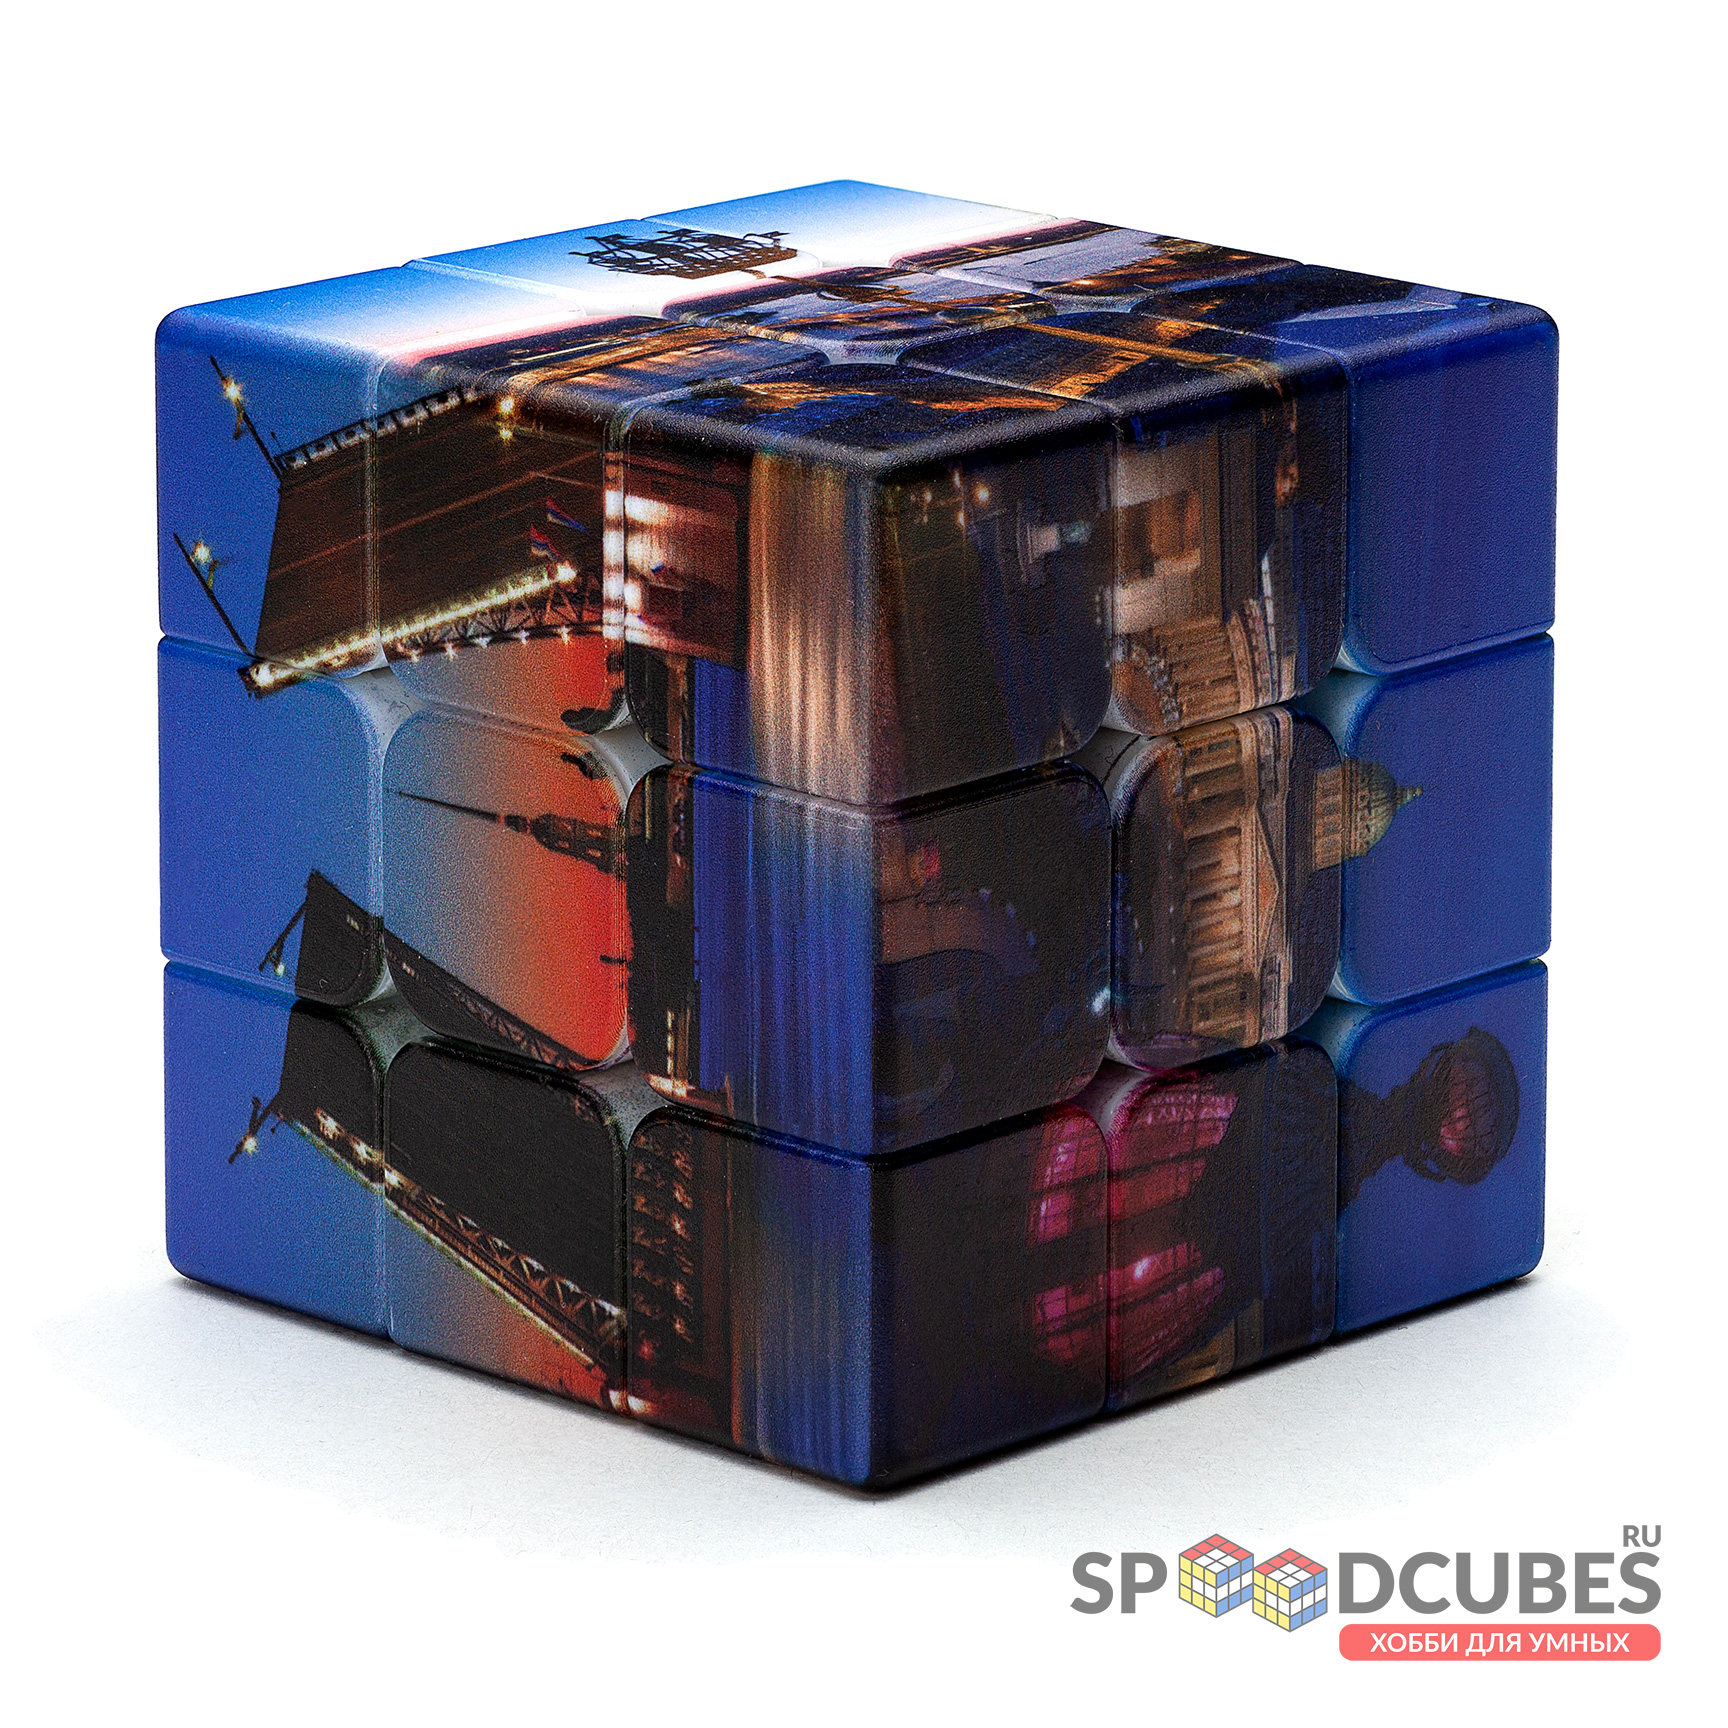 SPEEDCUBES 3x3x3 St.Petersburg Night